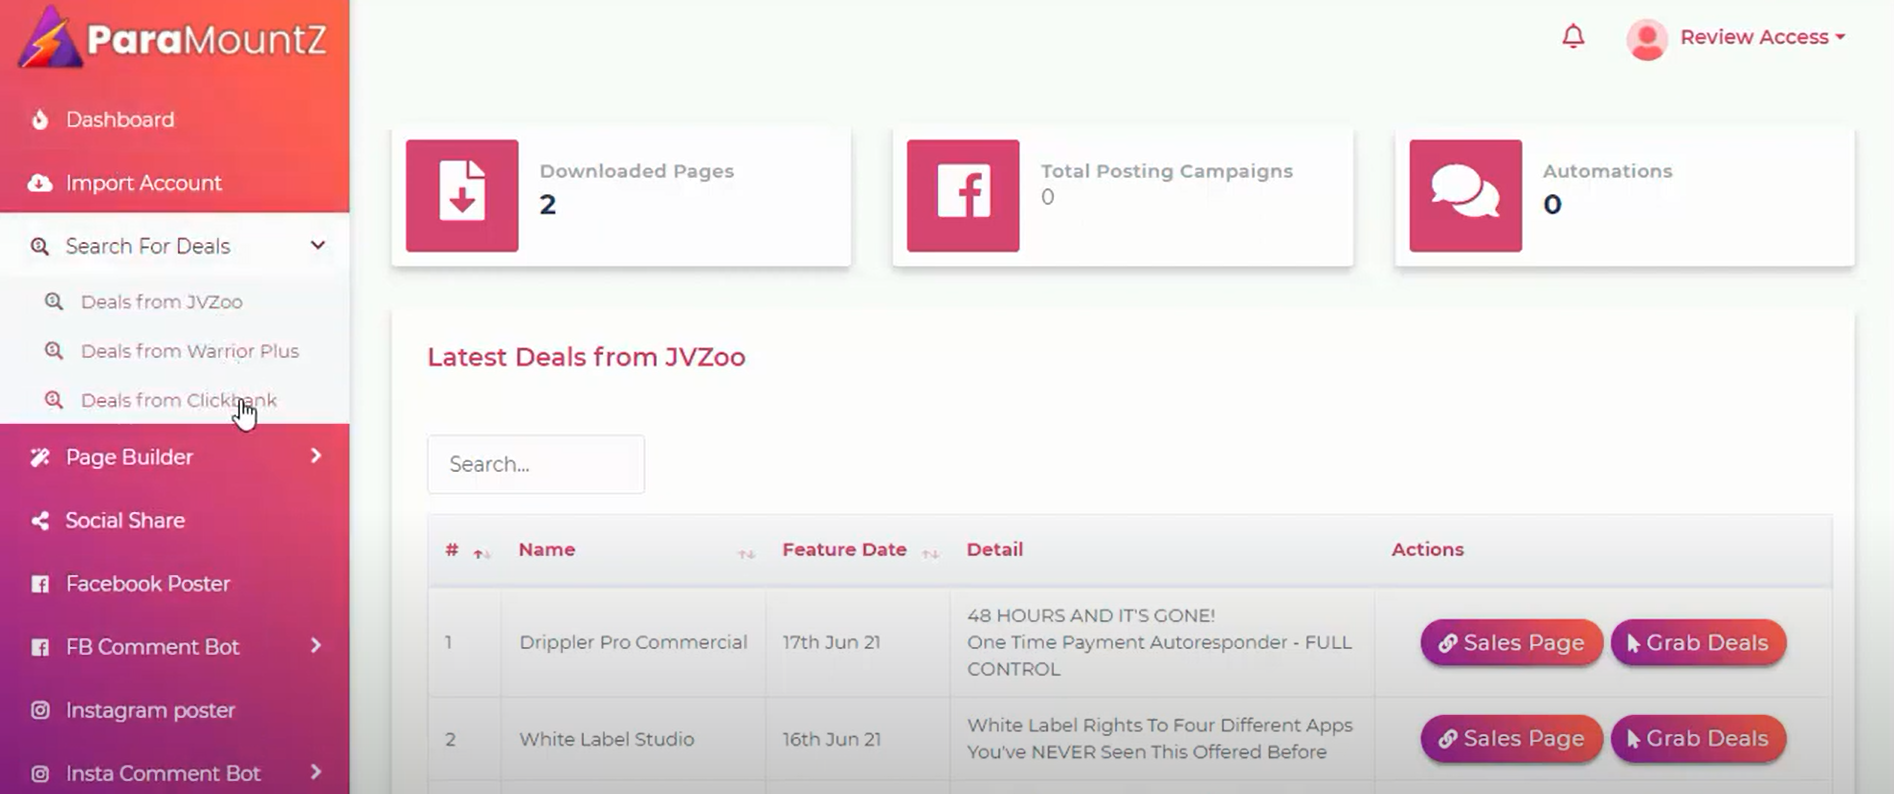 ParaMountZ The perfect app for affiliate marketers and eCommerce